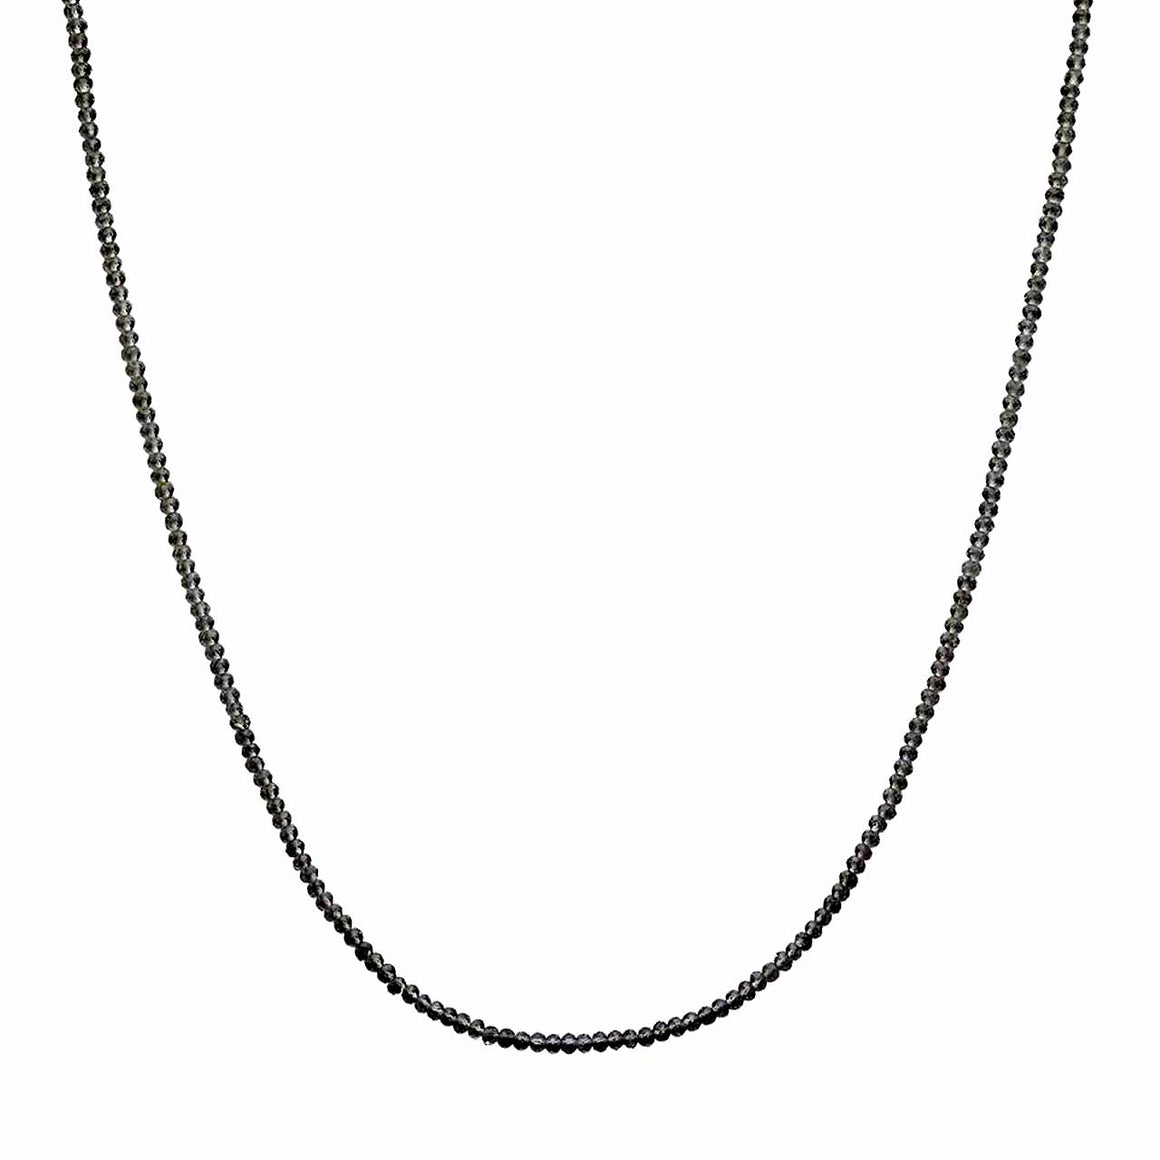 "Black Spinel 19""Gemstone Bead Necklace"